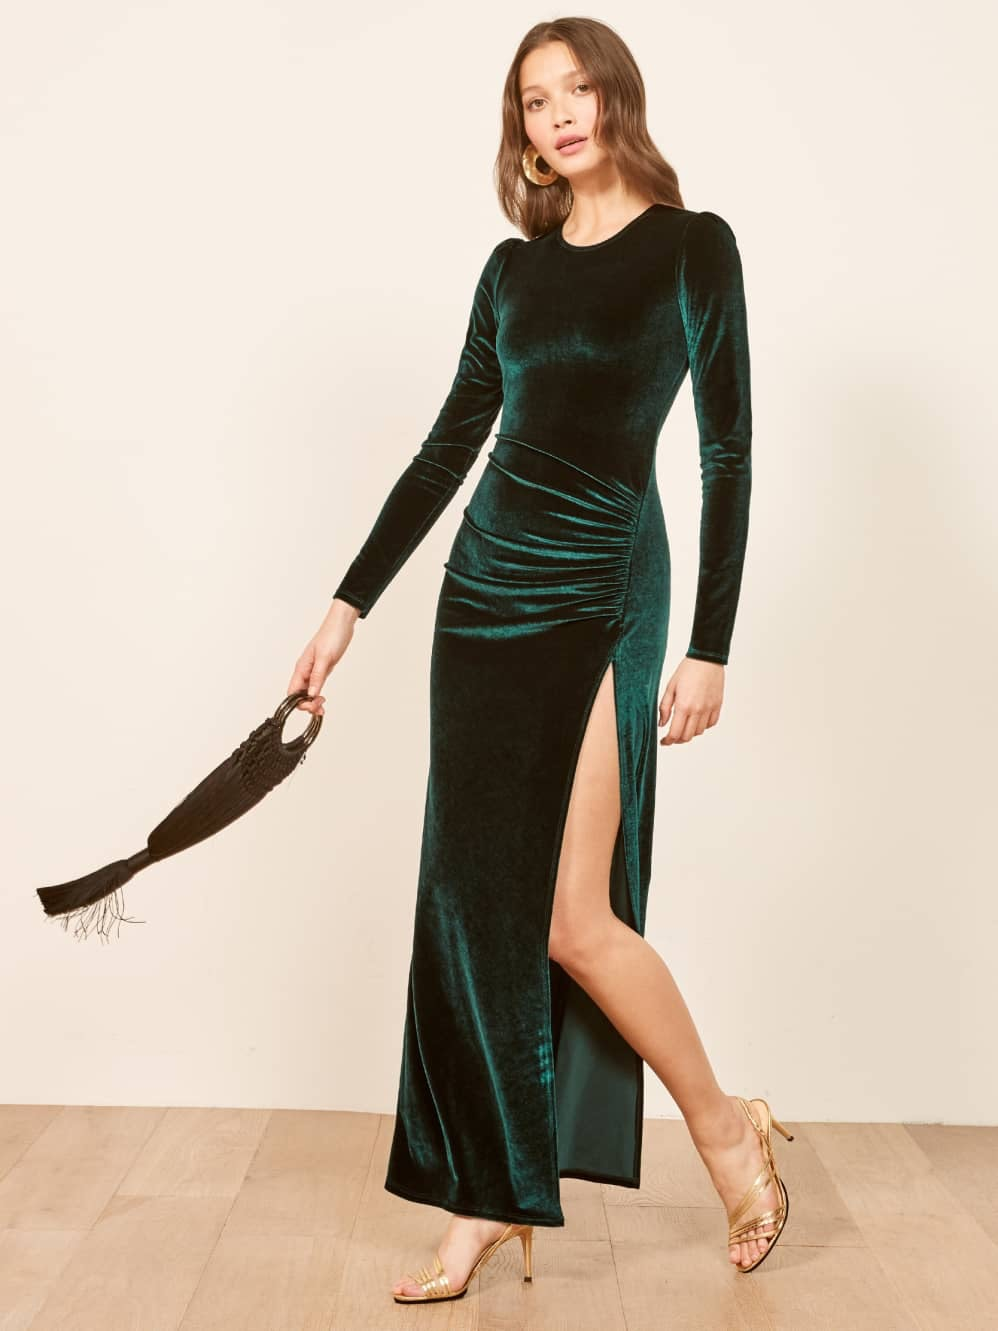 edb1d24af9b0d 15 Long New Year's Eve Dresses That Aren't Gowns, But Still Cover Your  Freezing Legs